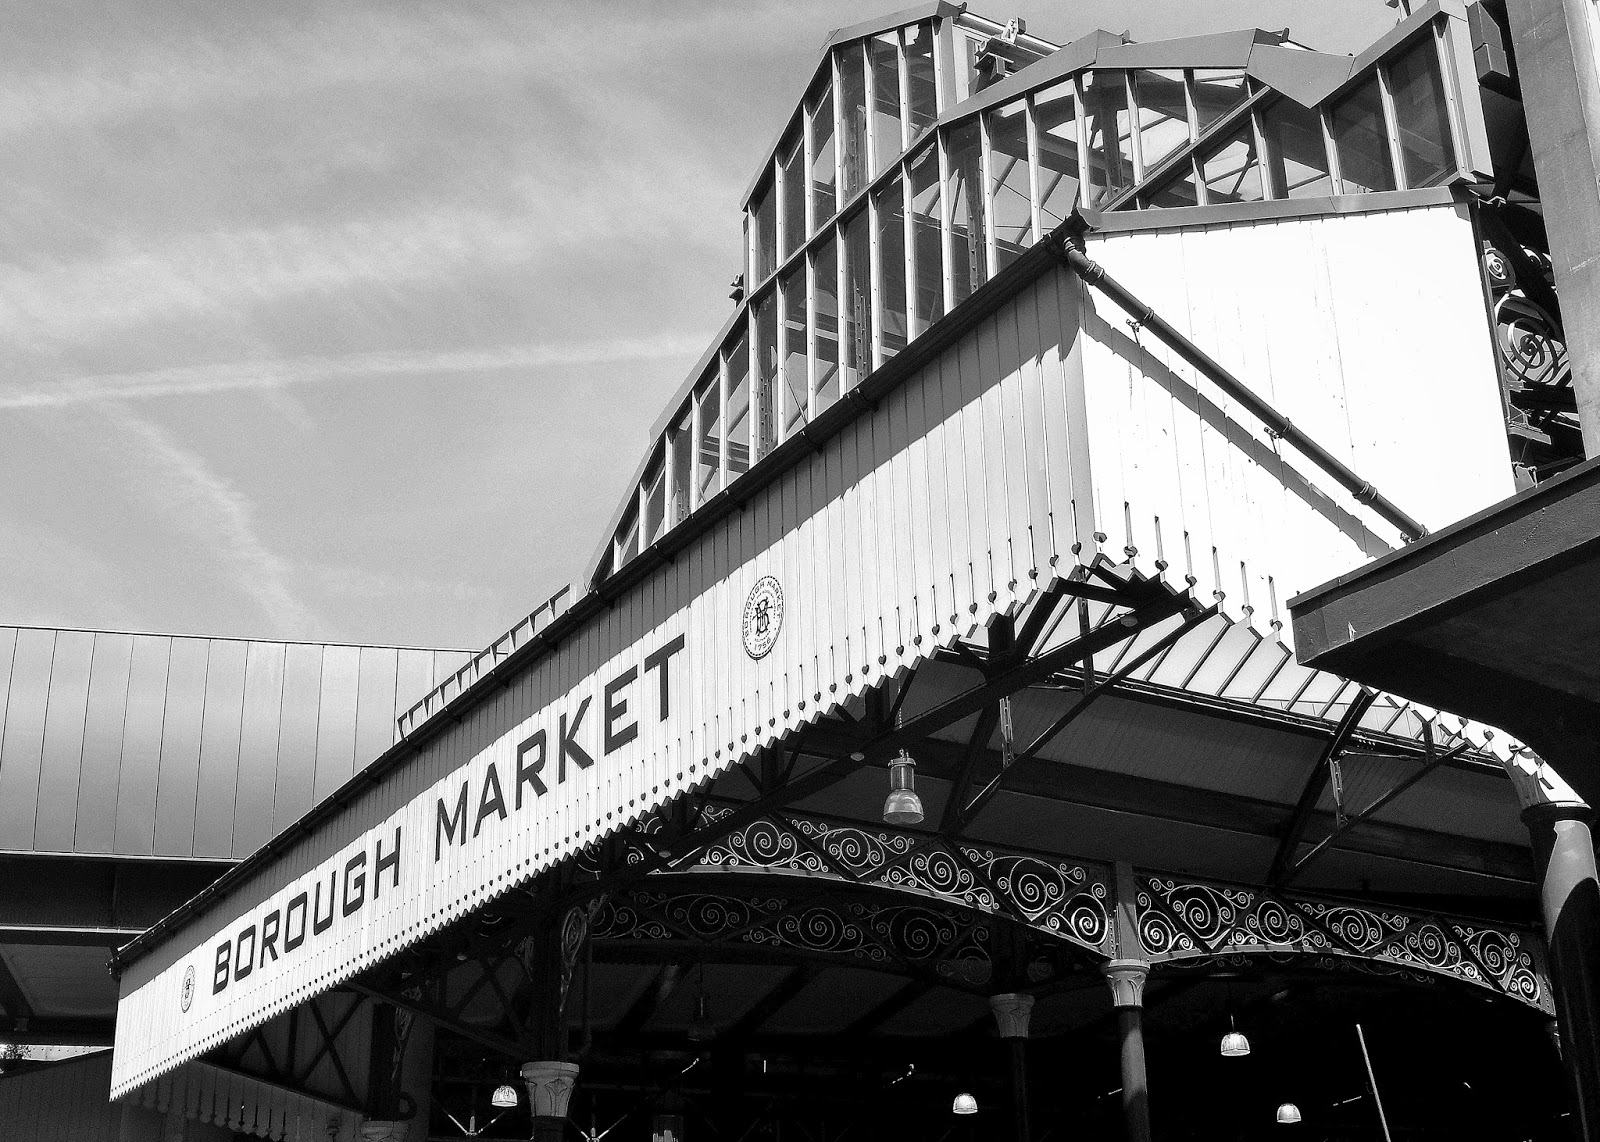 Borough Market, London Bridge - where I am reflecting on the defiant spirit of London and its communities.